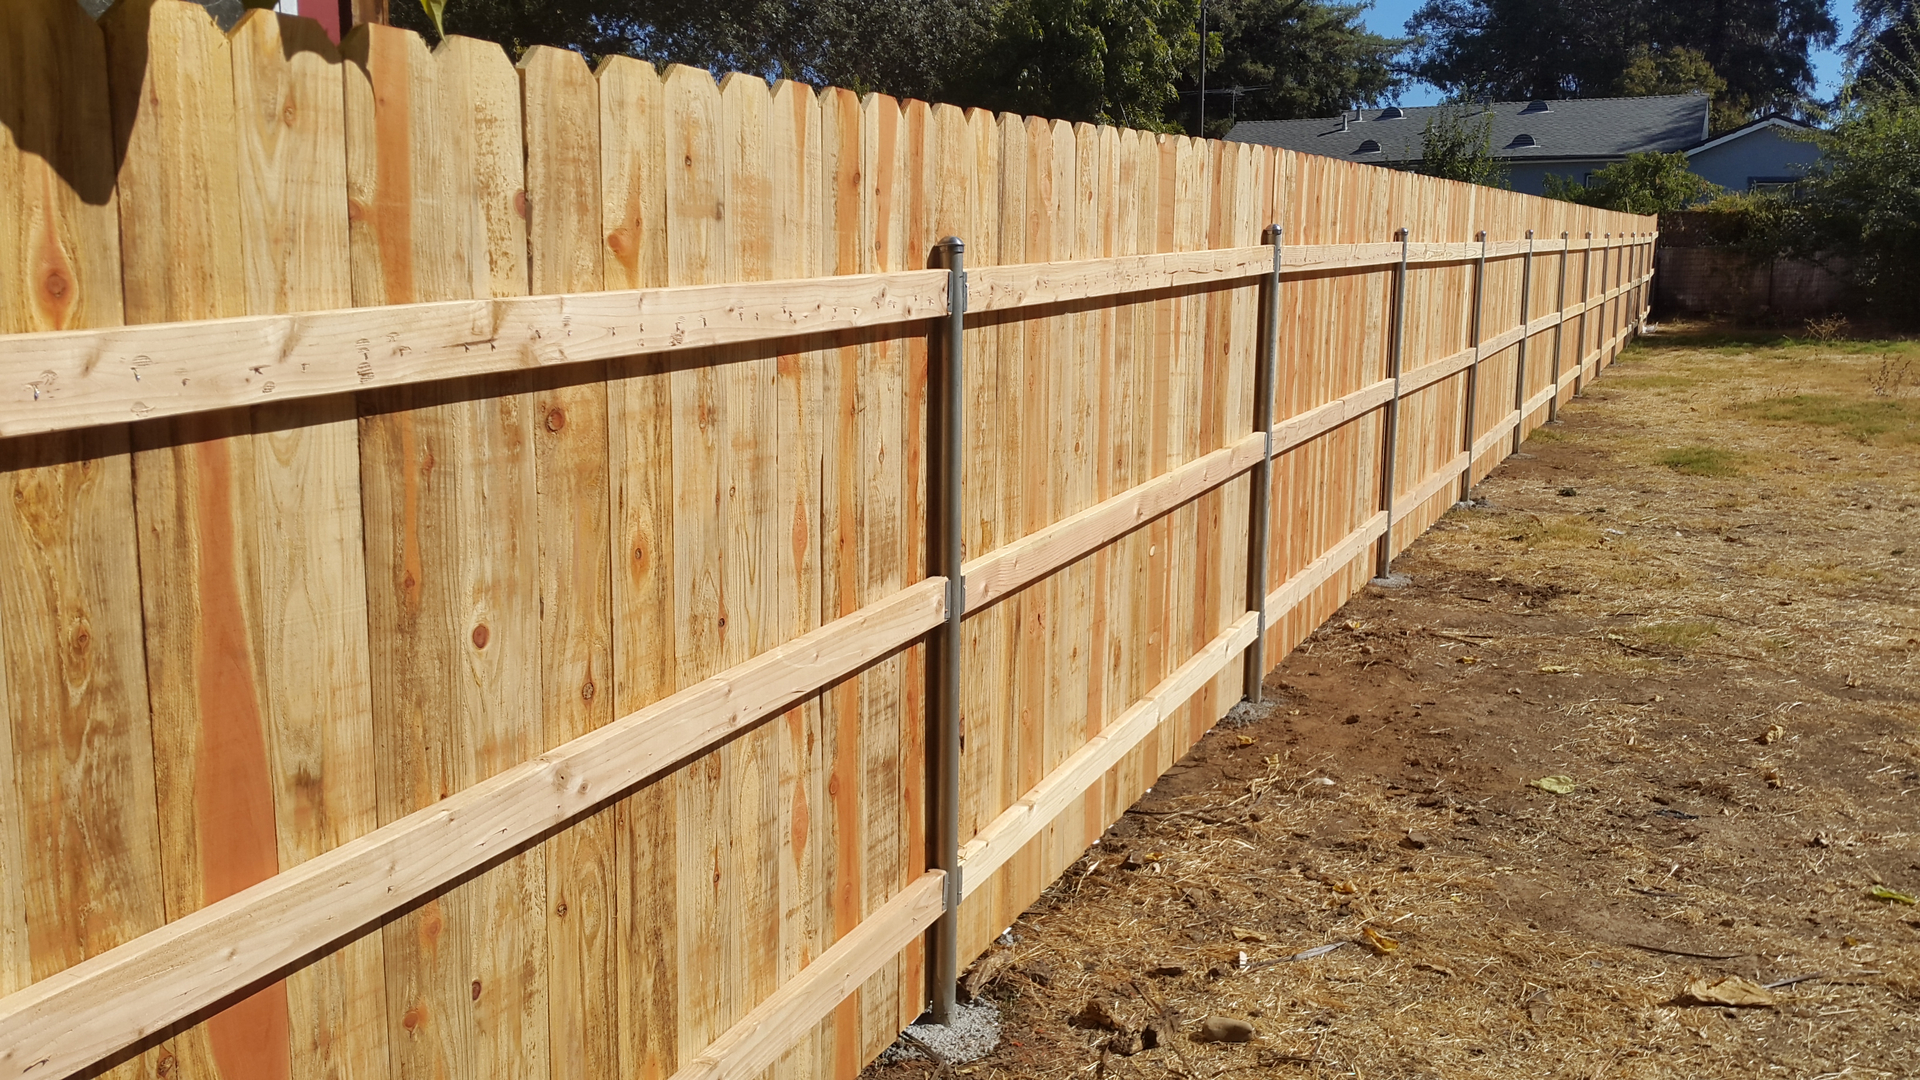 Metal post for wood fence - Wood Picket Fencing Is Generaly A Verticle Installed Wood Plank Along A Wooden Frame With Wood Or Metal Posts The Material Most Used For Wood Picket